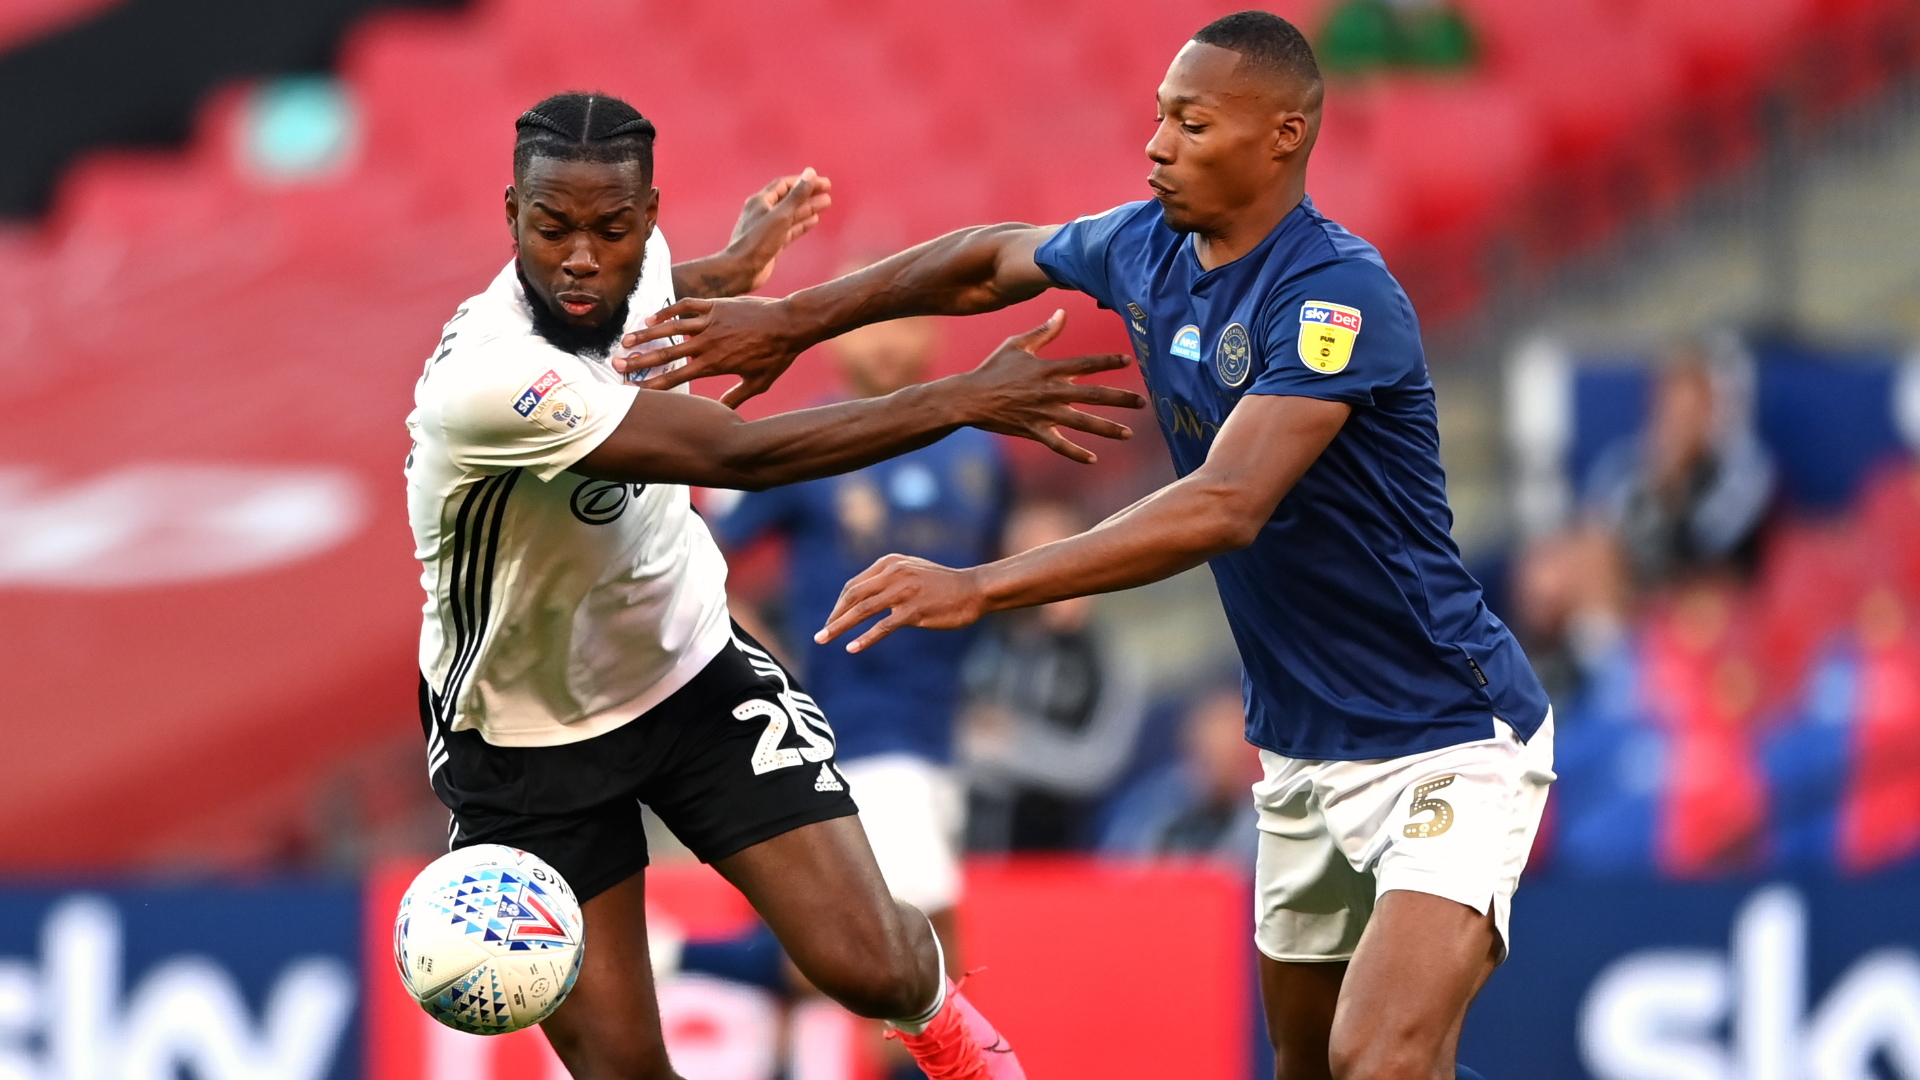 Onomah: Fulham midfielder looks forward to first Premier League clash against Arsenal